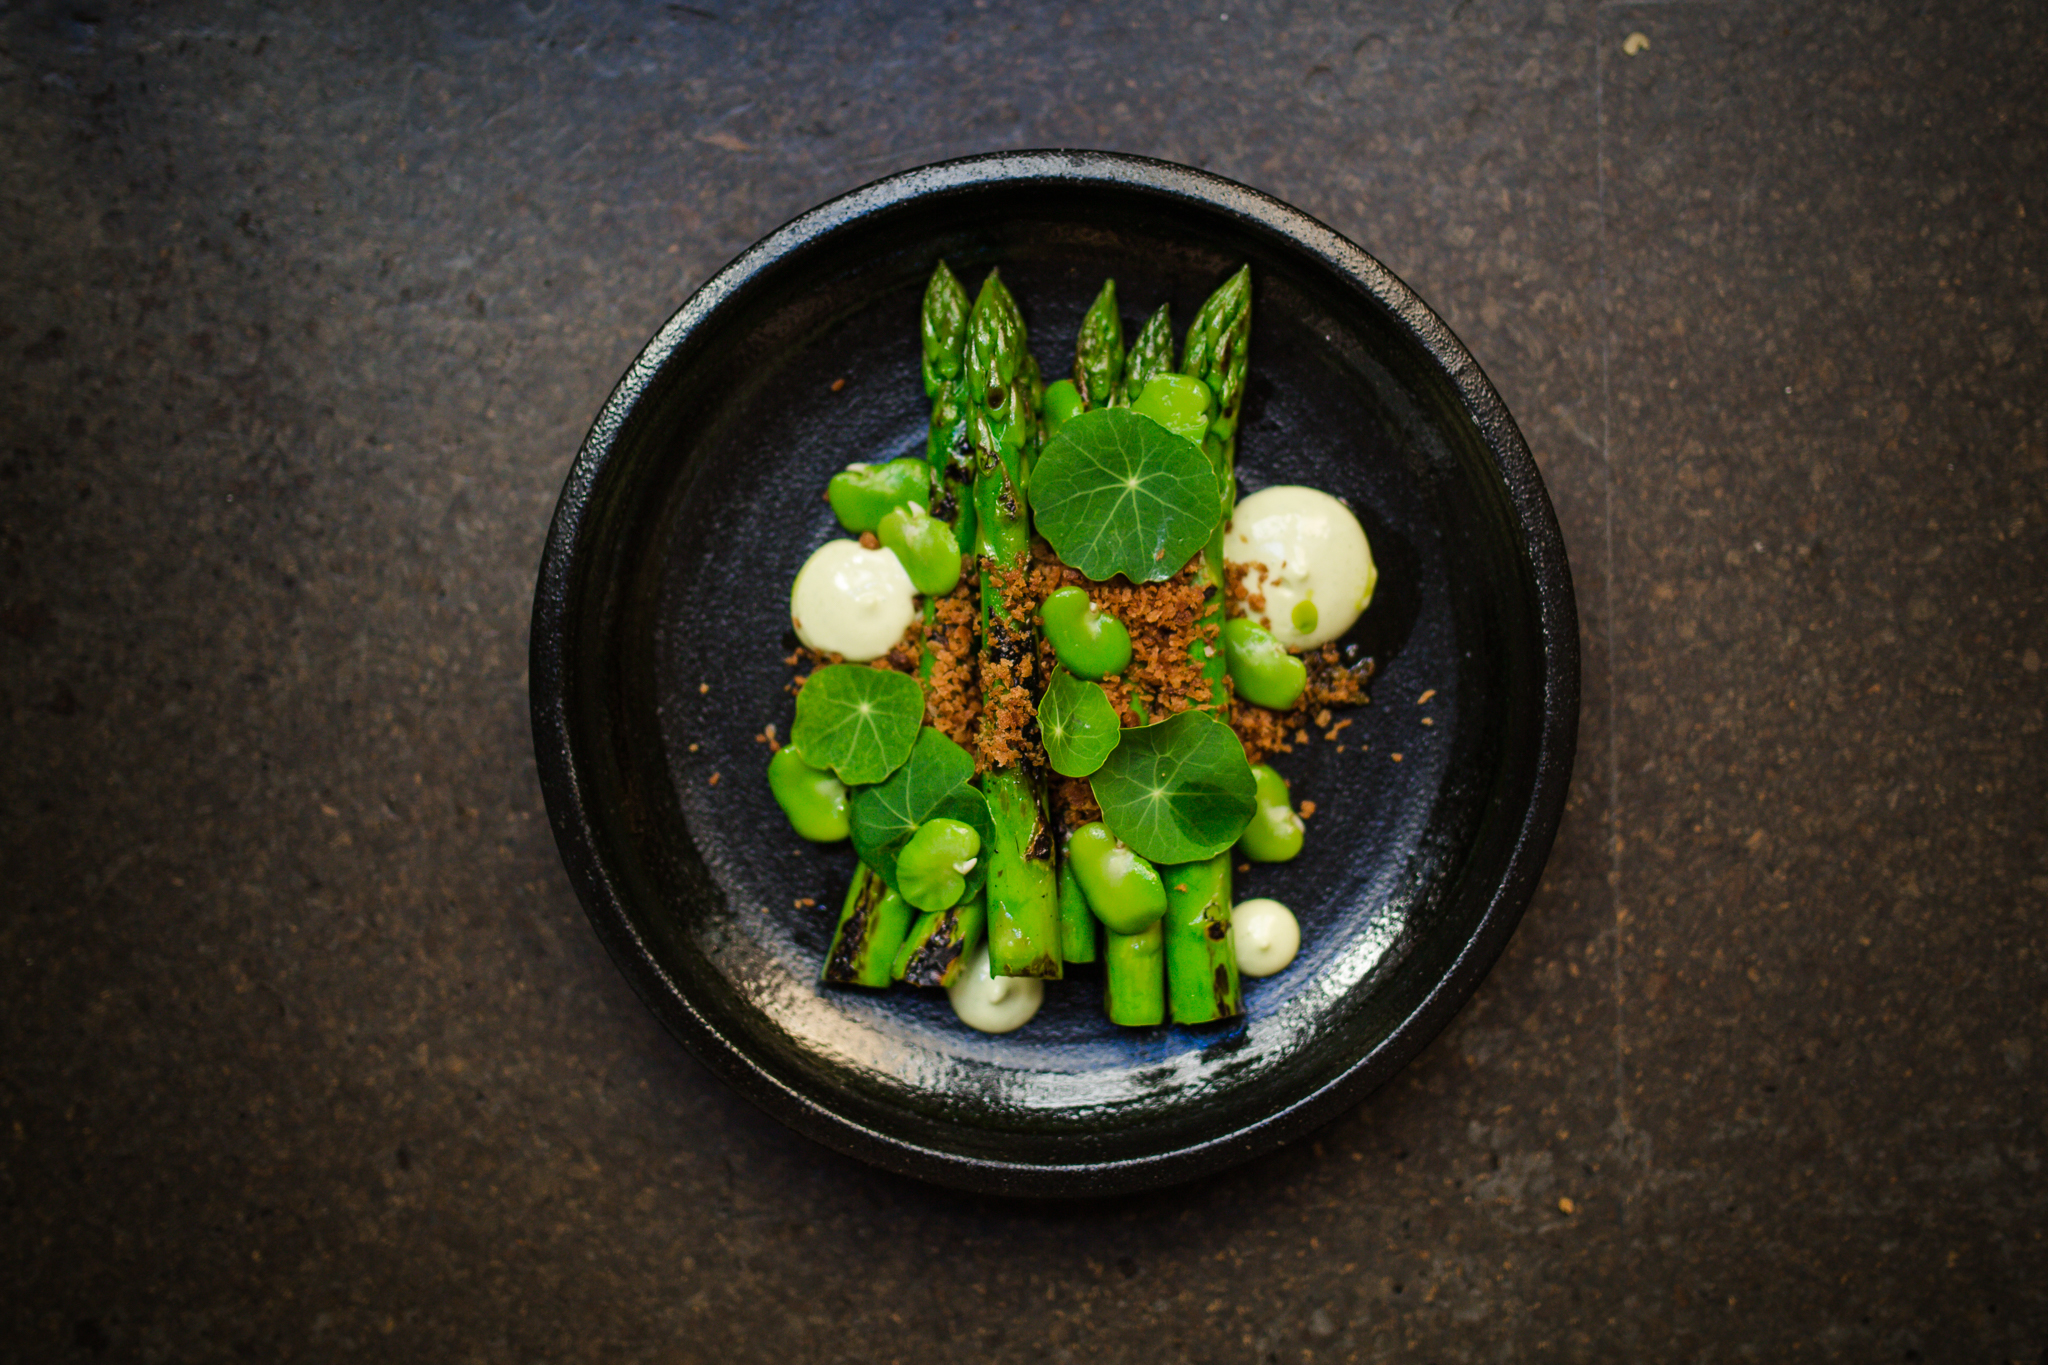 Public Events - We host a range of public events that specialise in share-style dining experiences, using locally sourced, ethically produced food that is good for people and the environment. We oftne have guest speakers that talk about sourcing great food and the benefits of a more sustainable food system.